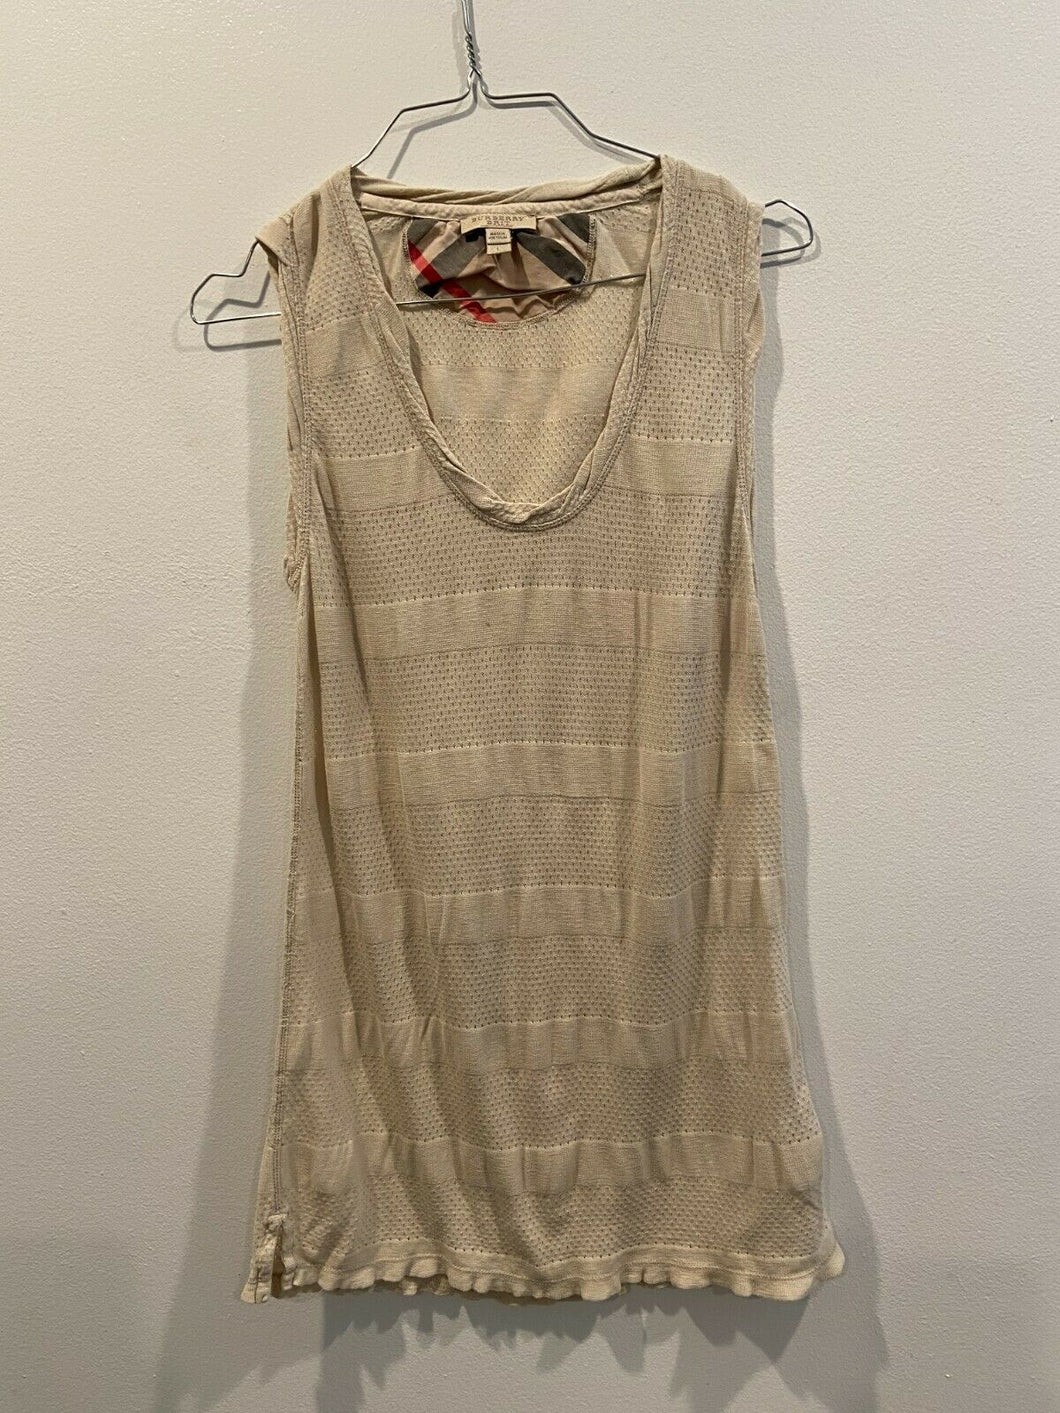 Burberry Brit Peforated Nylon Striped Tank